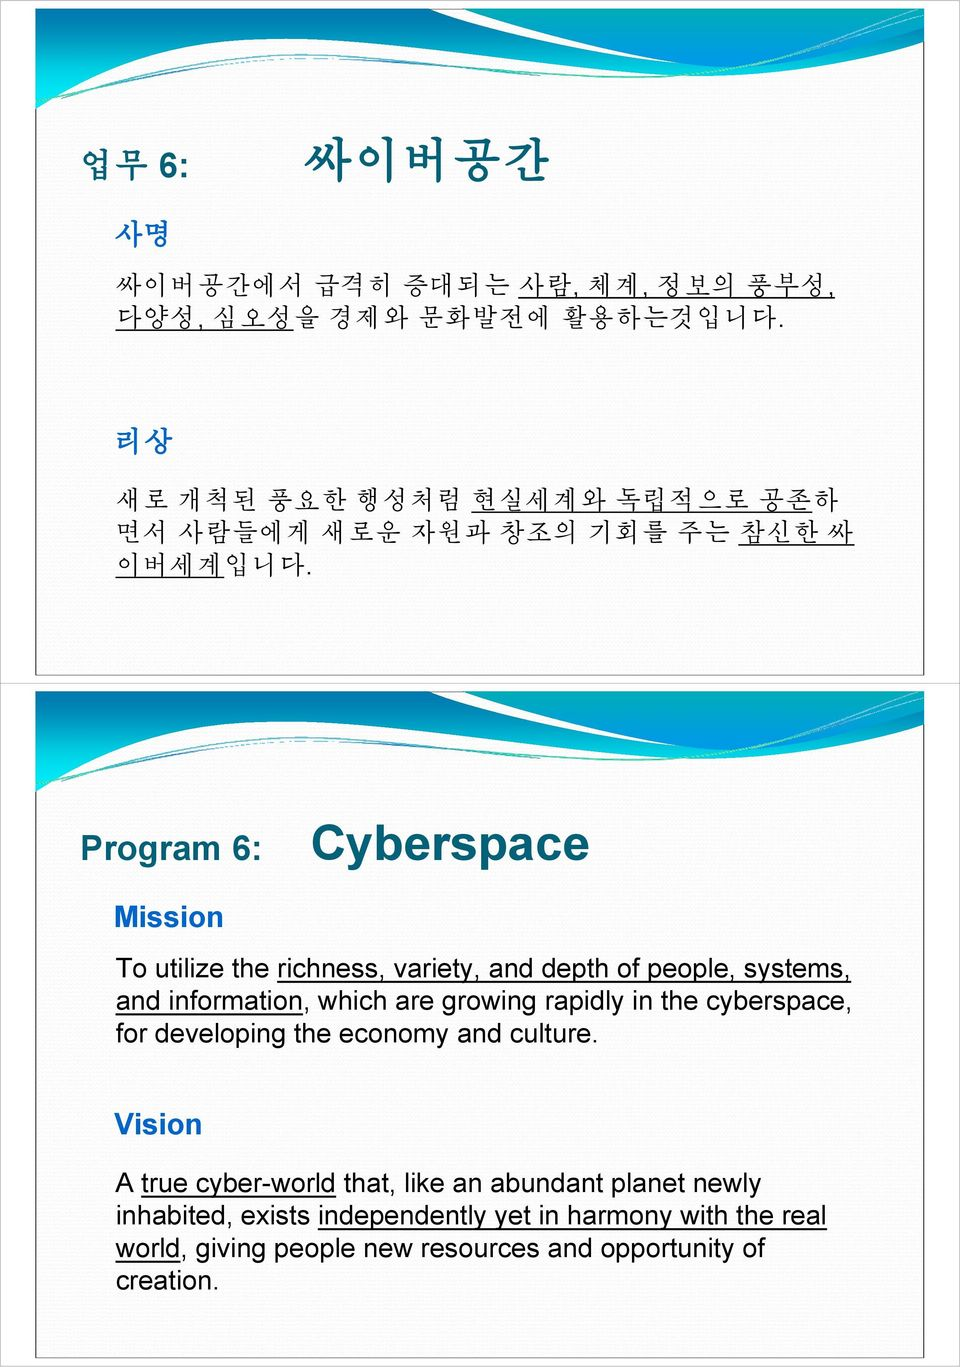 Program 6: Cyberspace Mission To utilize the richness, variety, and depth of people, systems, and information, which are growing